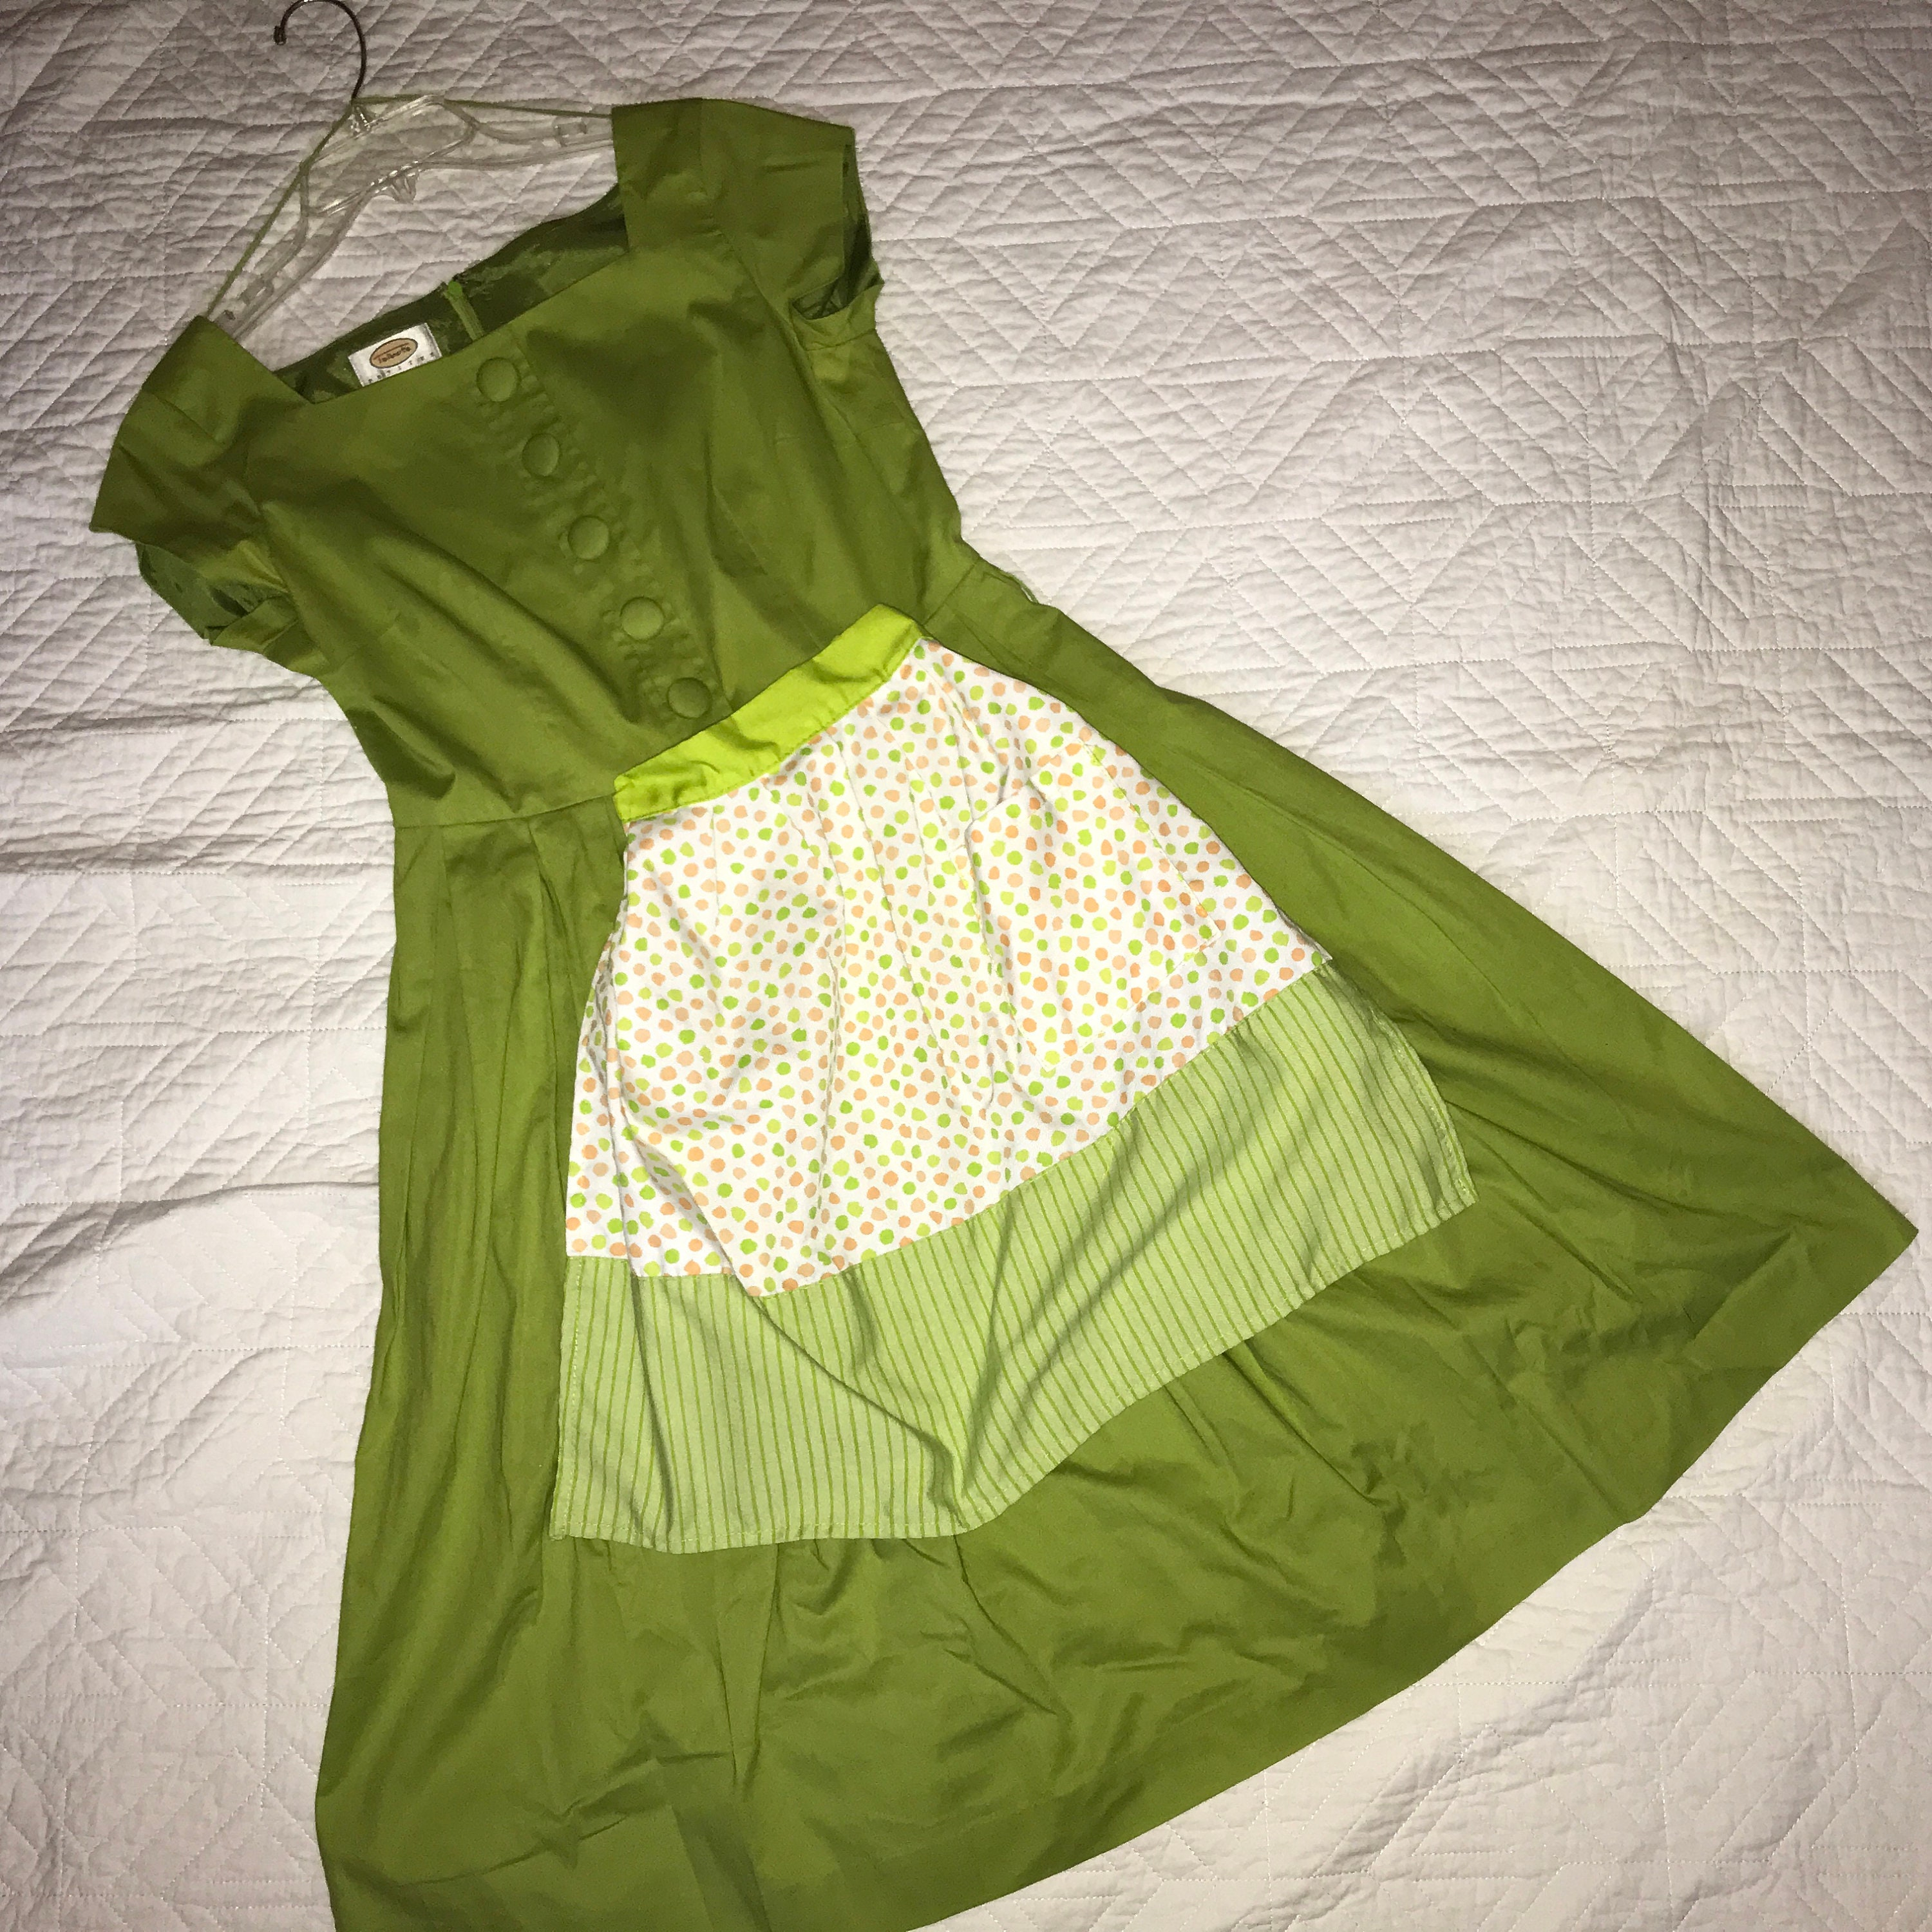 Vintage Aprons, Retro Aprons, Old Fashioned Aprons & Patterns Diner Waitress Flo Alice Dress Apron Womens Size 6 Halloween Costume Zombie 50S Look $52.00 AT vintagedancer.com